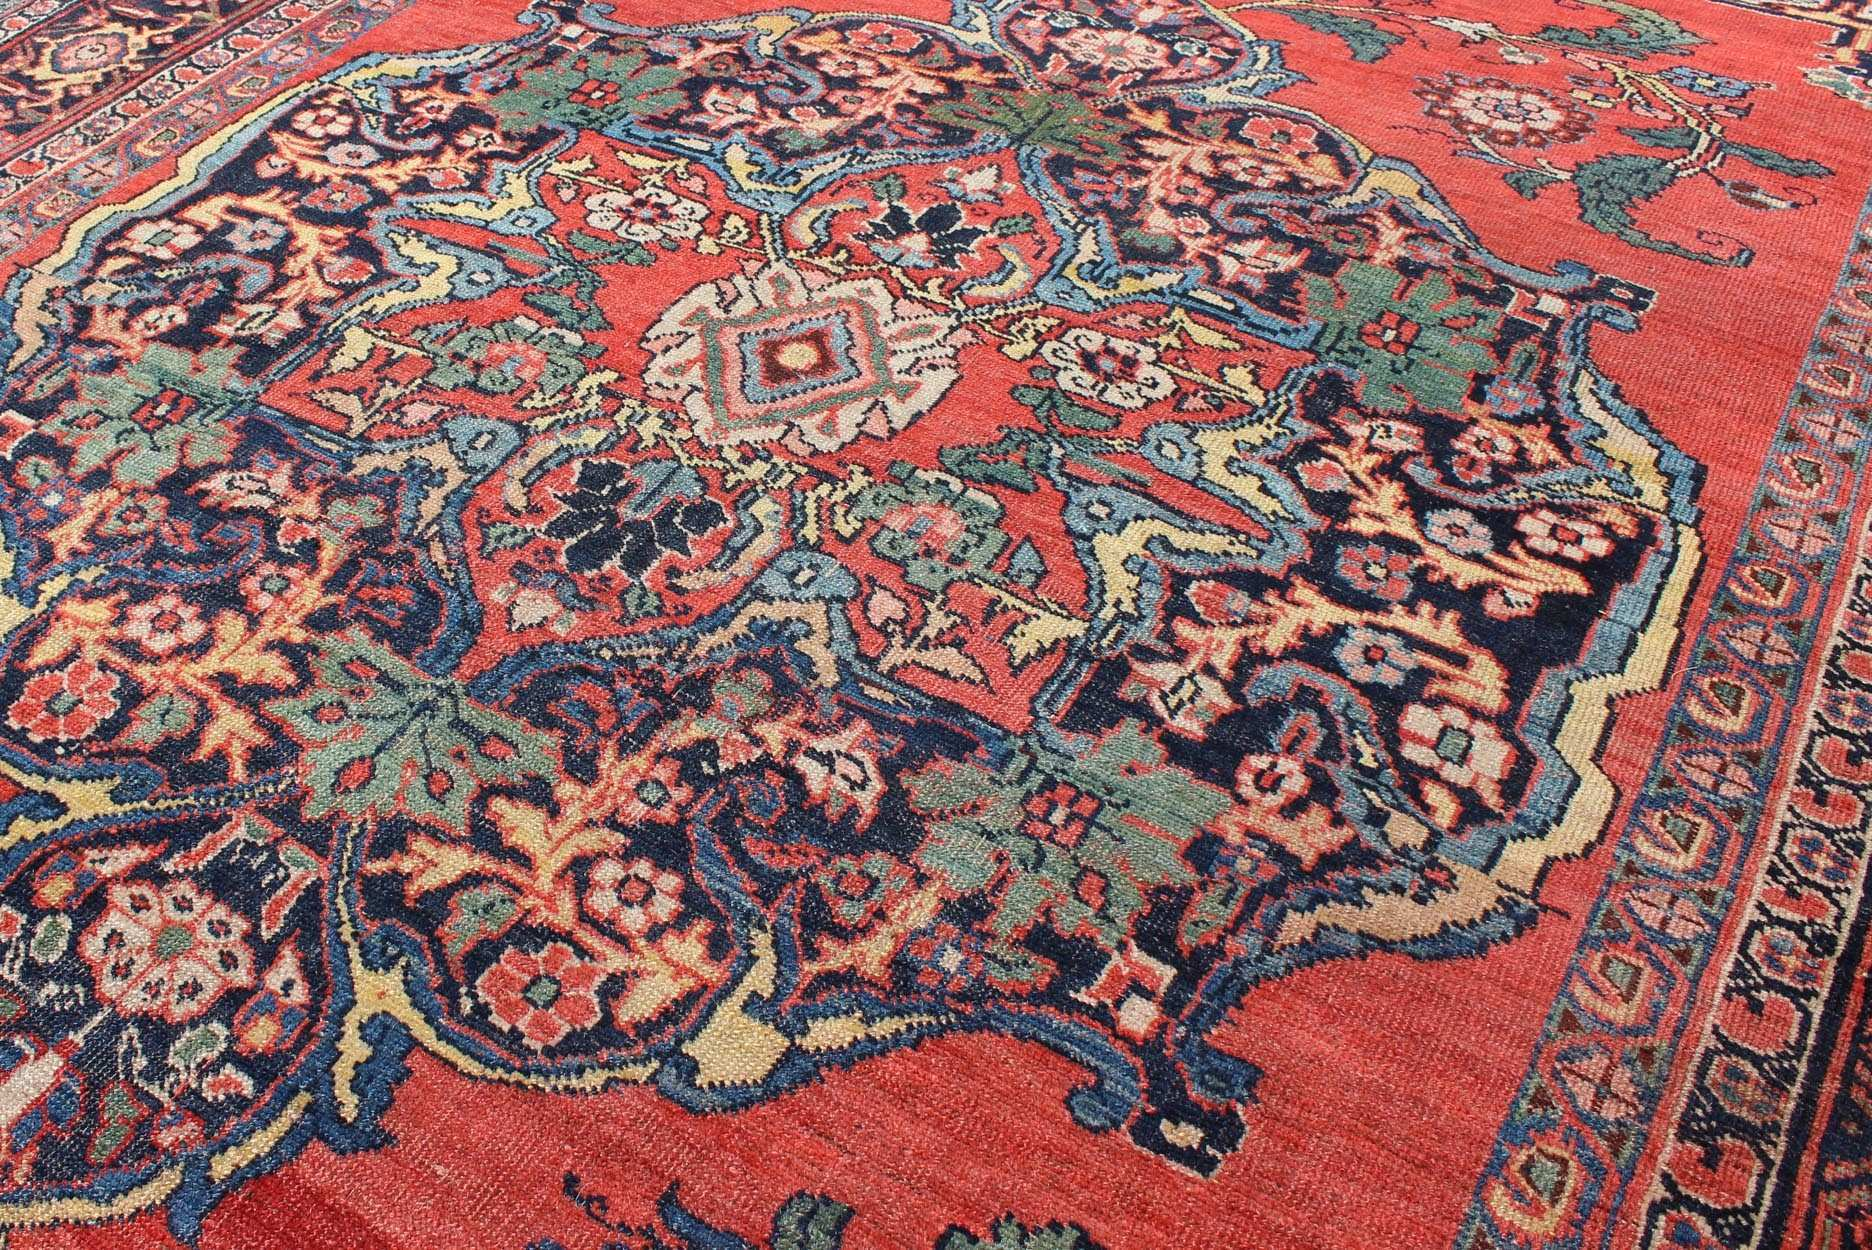 Red Background 1920s Antique Persian Bidjar Rug with Floral